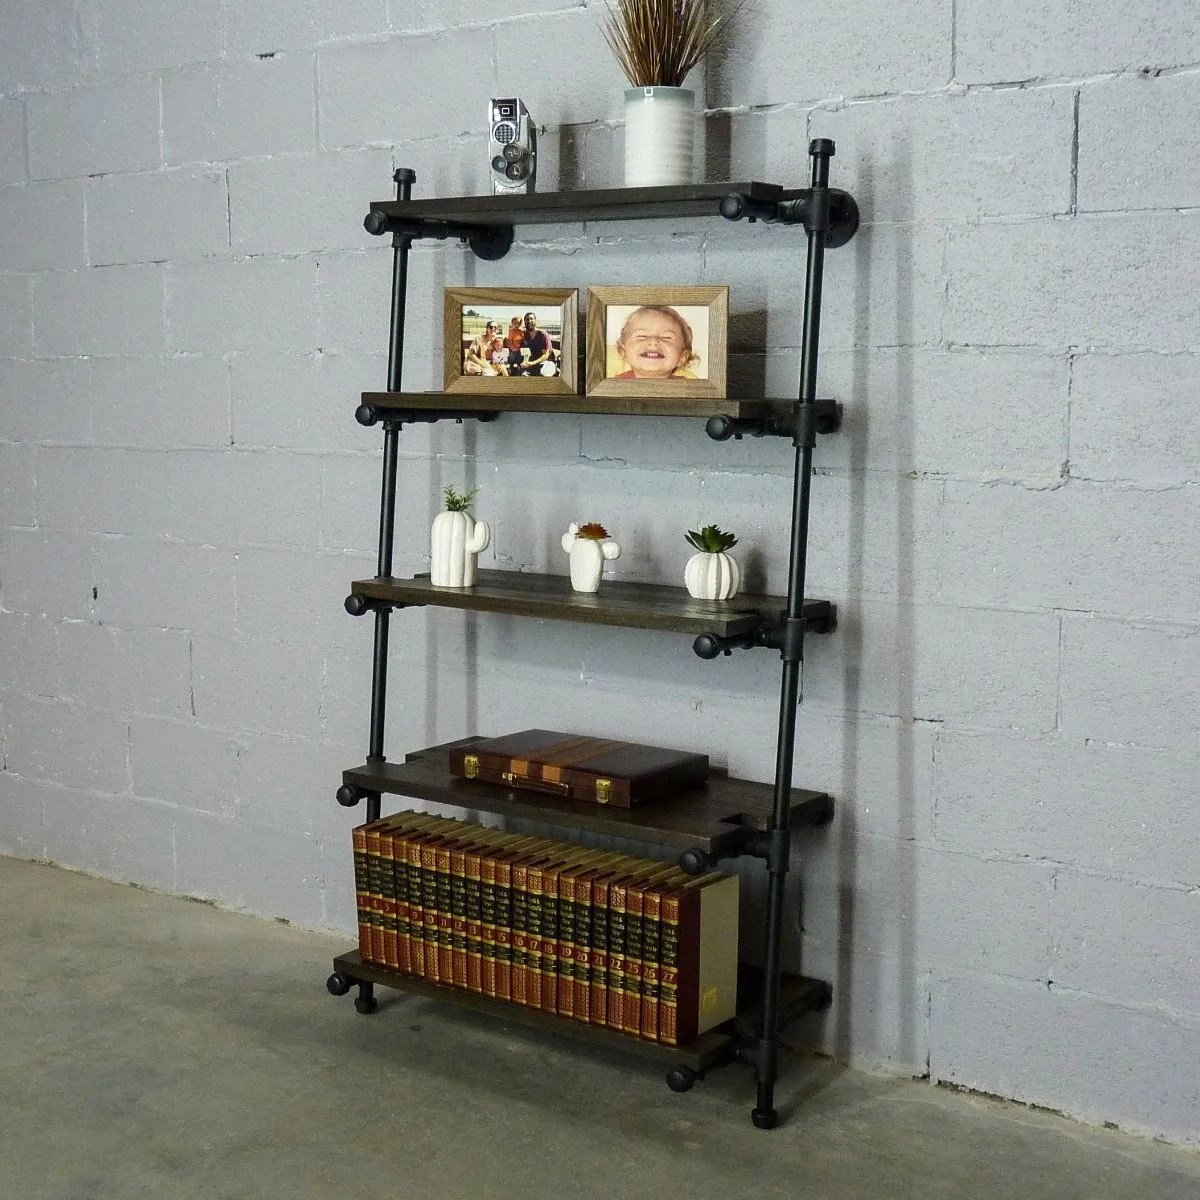 Furniture Pipeline Orlando Industrial Leaning Bookcase Overstock 27516481